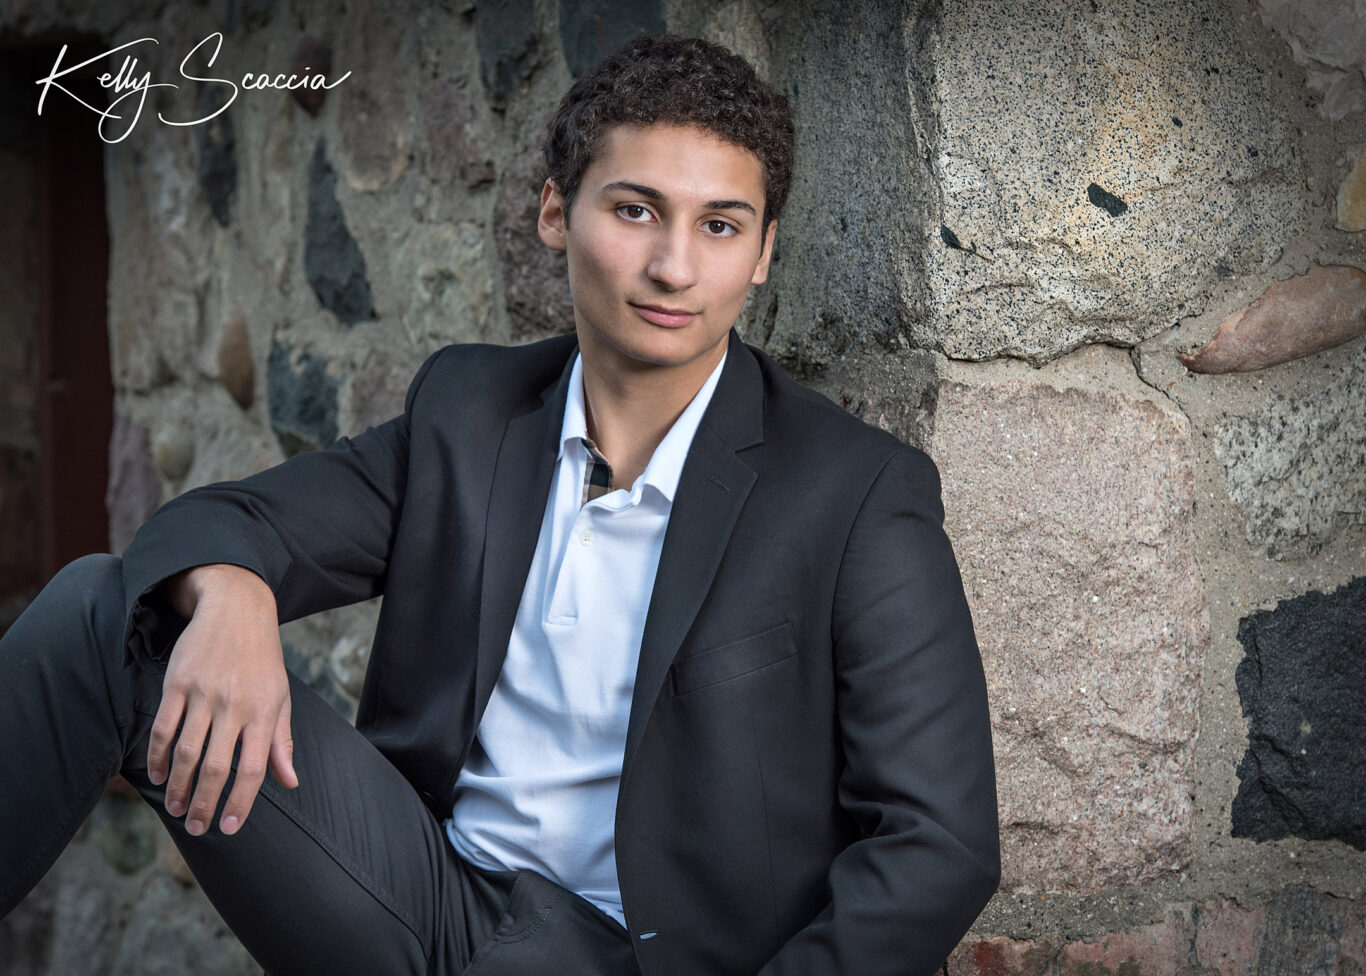 Outdoor senior guy portrait with short, dark, curly hair, wearing black sport coat, white shirt and jeans, serious expression and looking at you